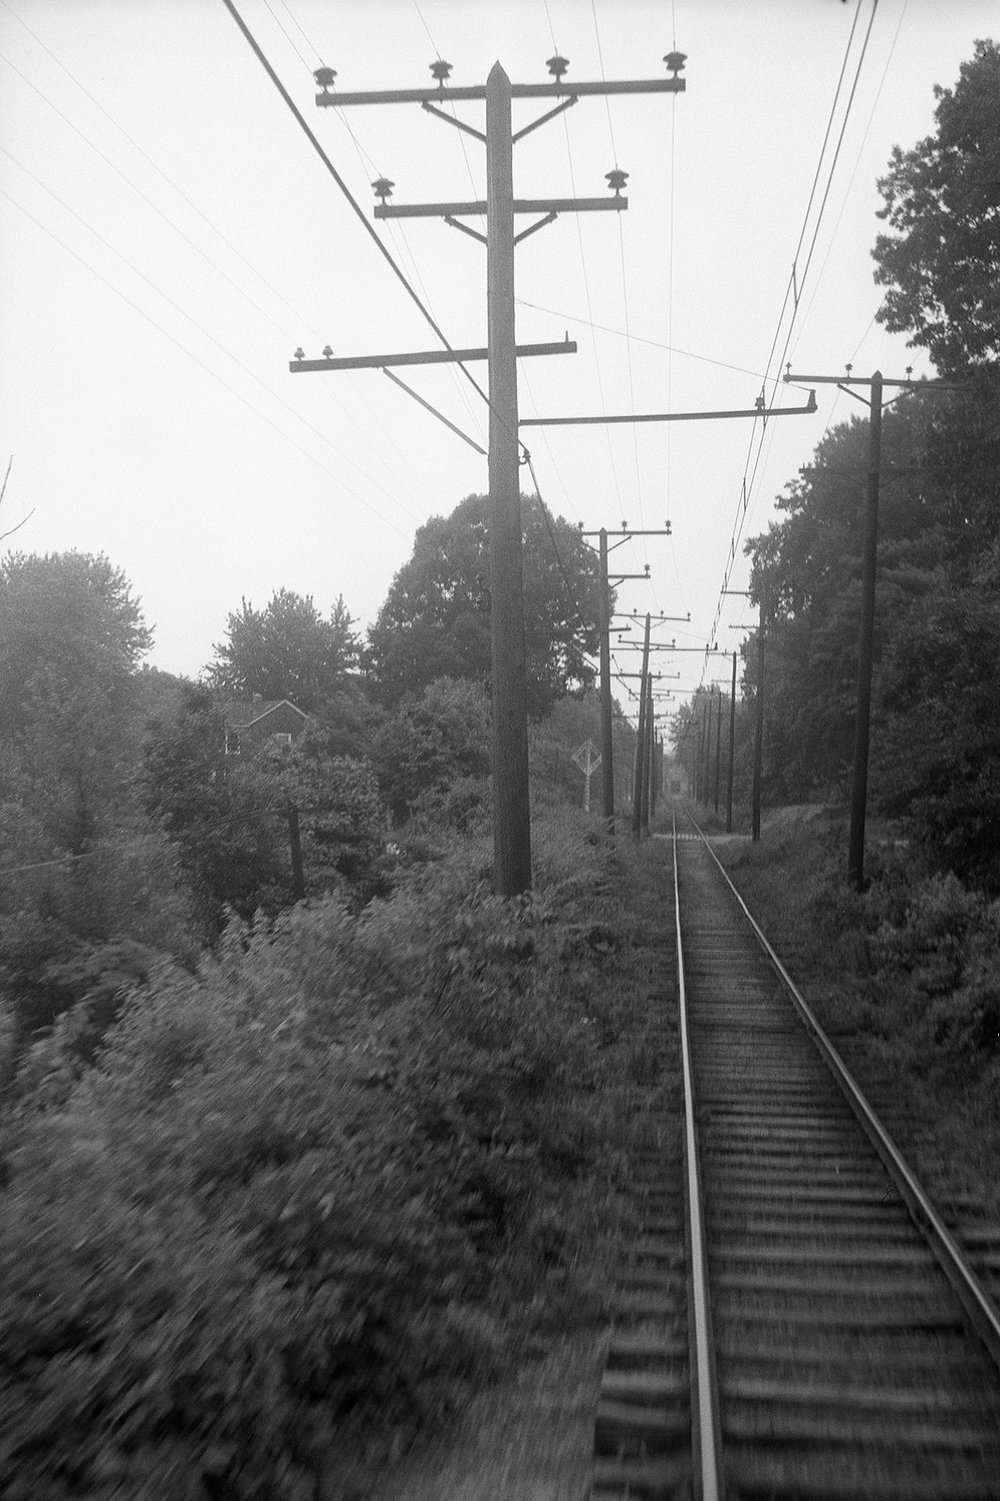 Baltimore & Annapolis Railroad. Maryland, Circa 1940's. Source: Hugh Hayes Collection.